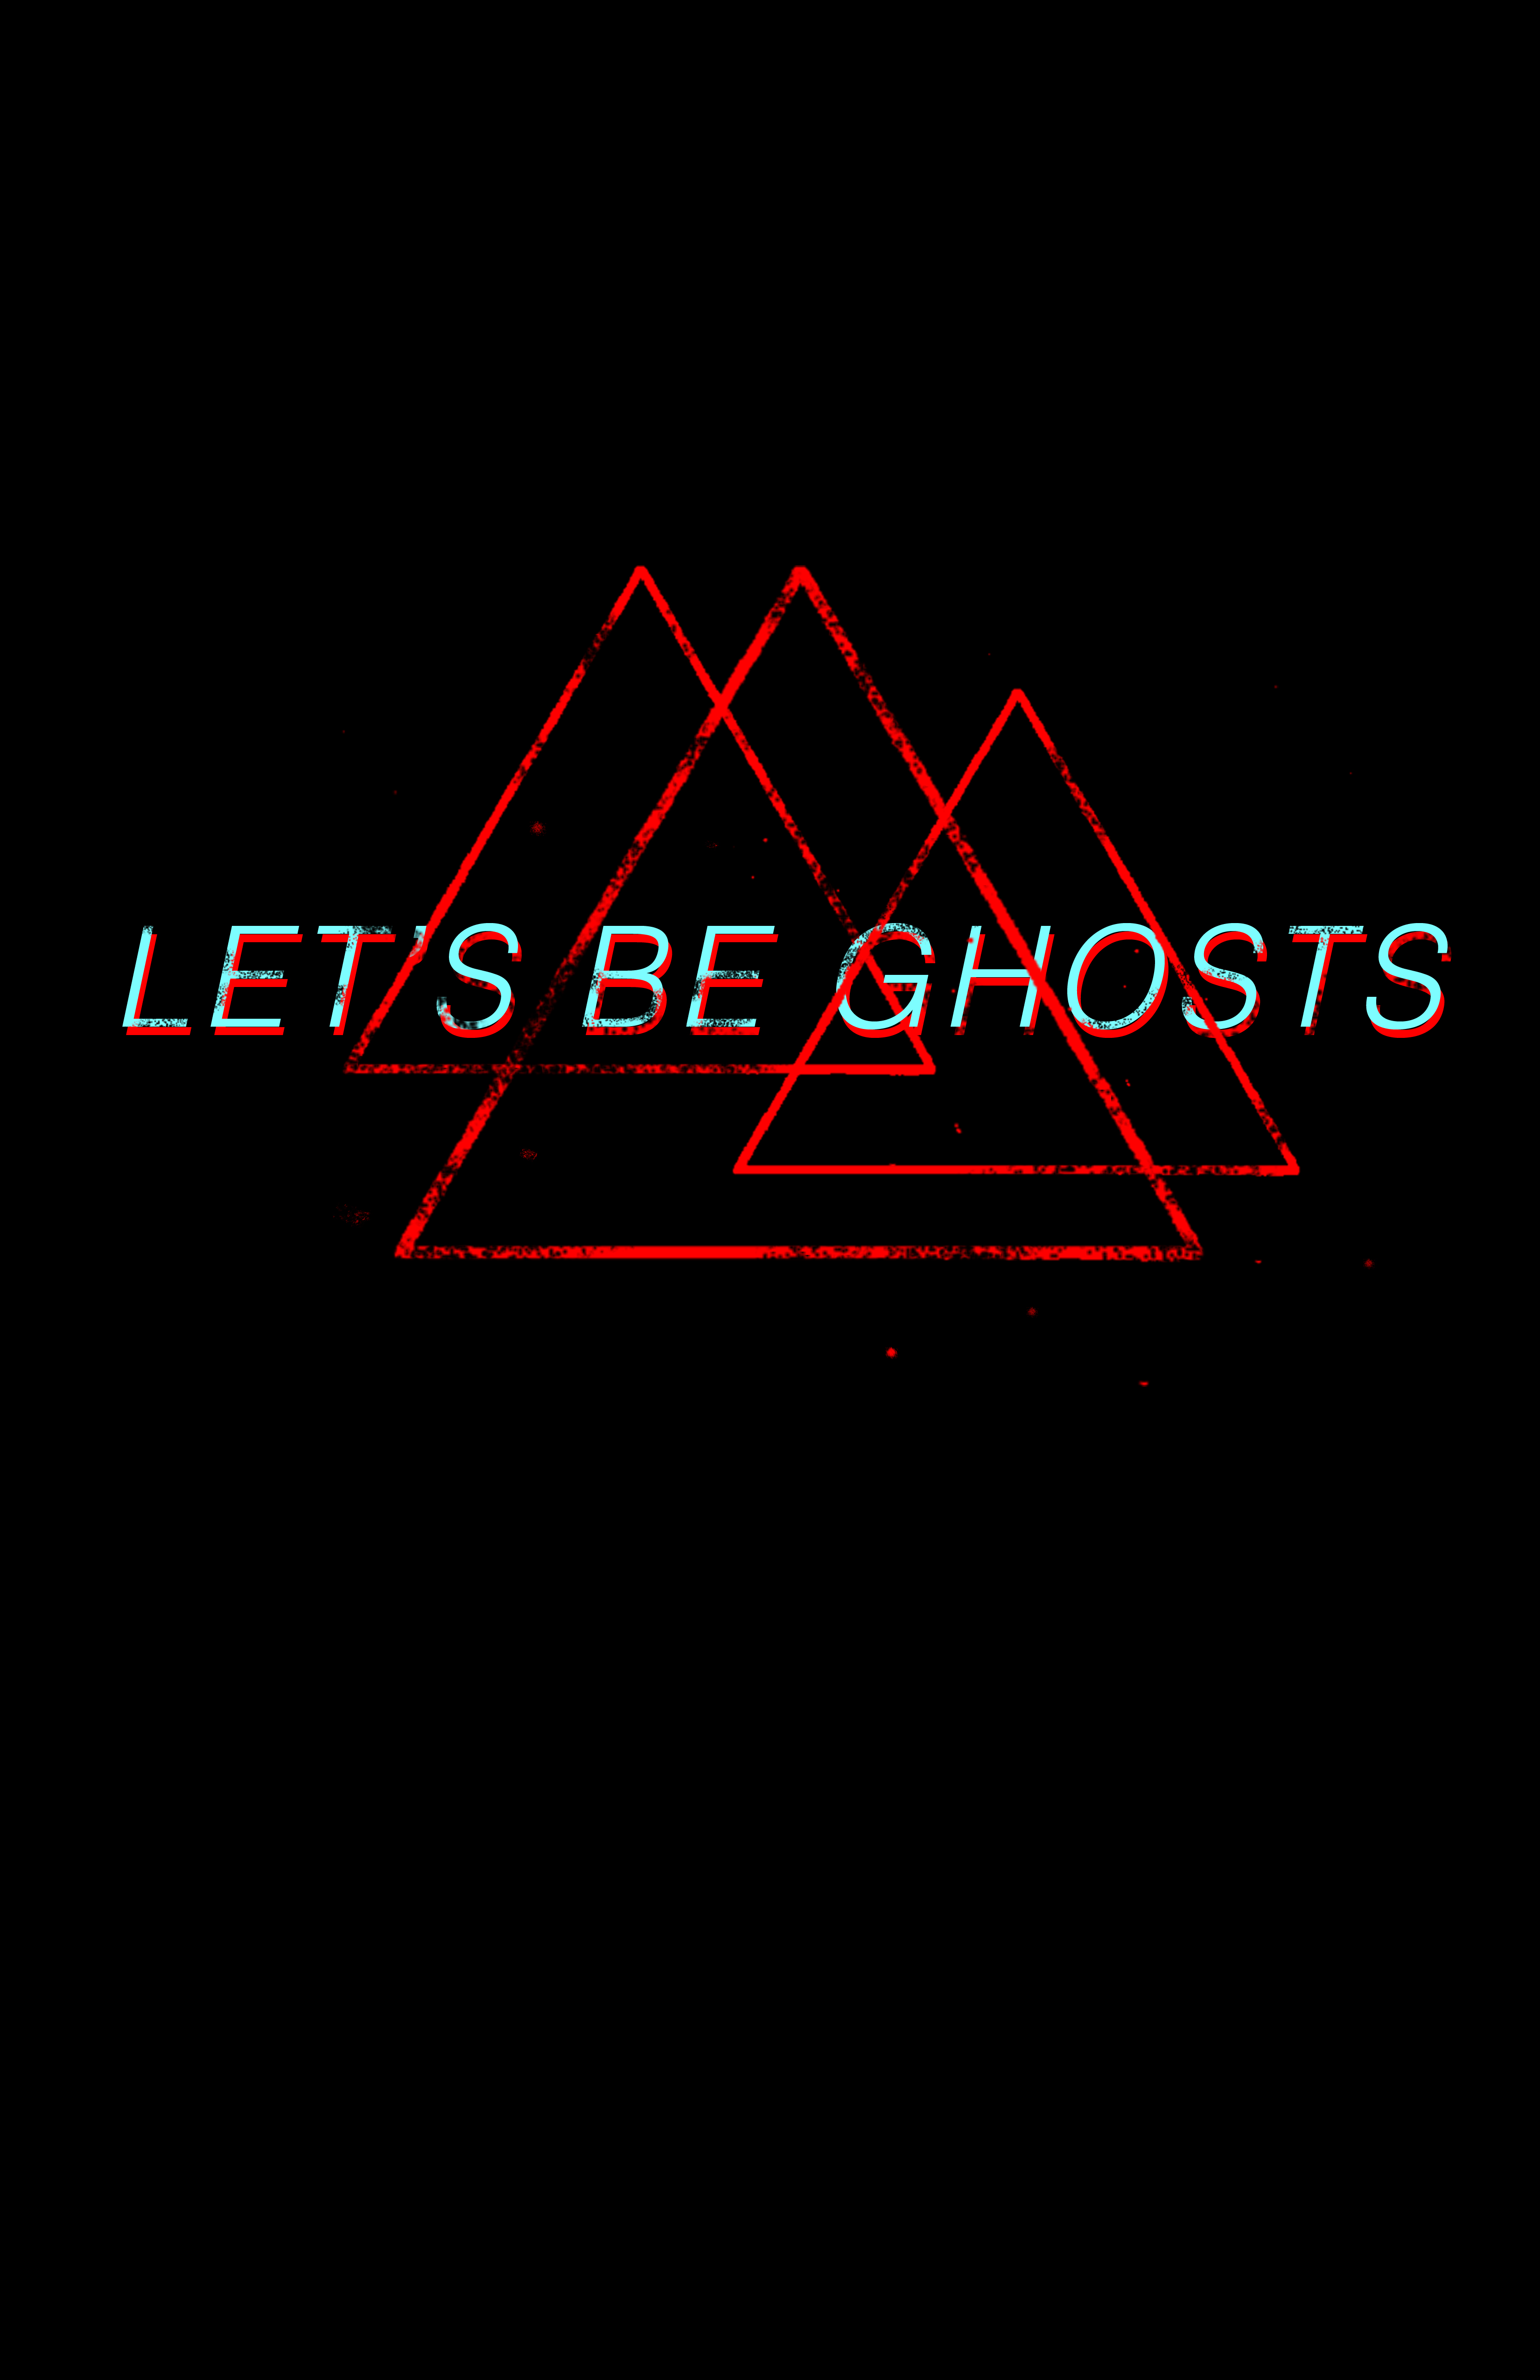 Let's Be Ghosts: Main Image